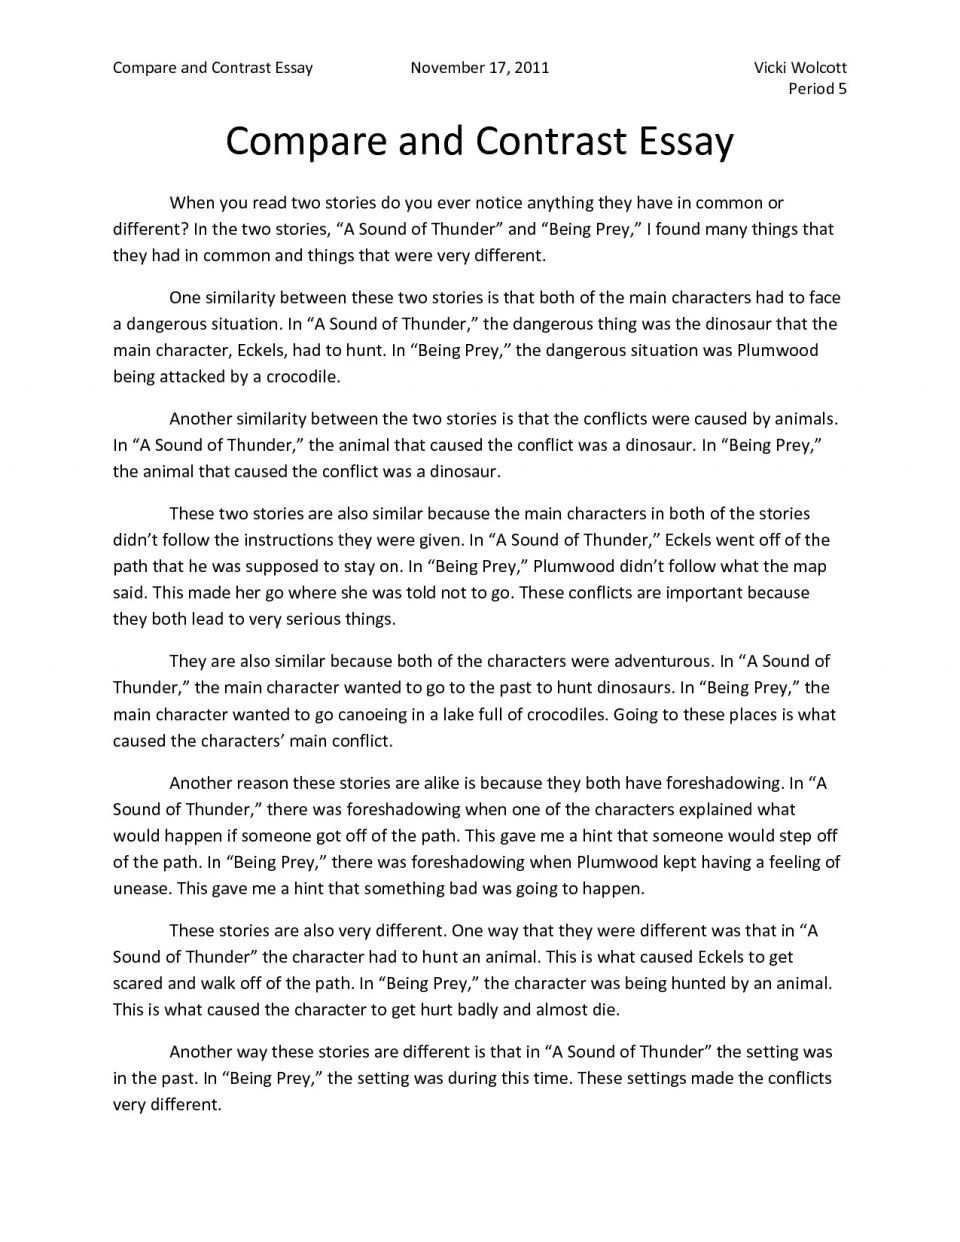 006 Comparing And Contrasting Essay Example Satire Examples Of Comparison Contrast Essays Com How To Write Outstanding A Compare Outline Ppt Middle School 960